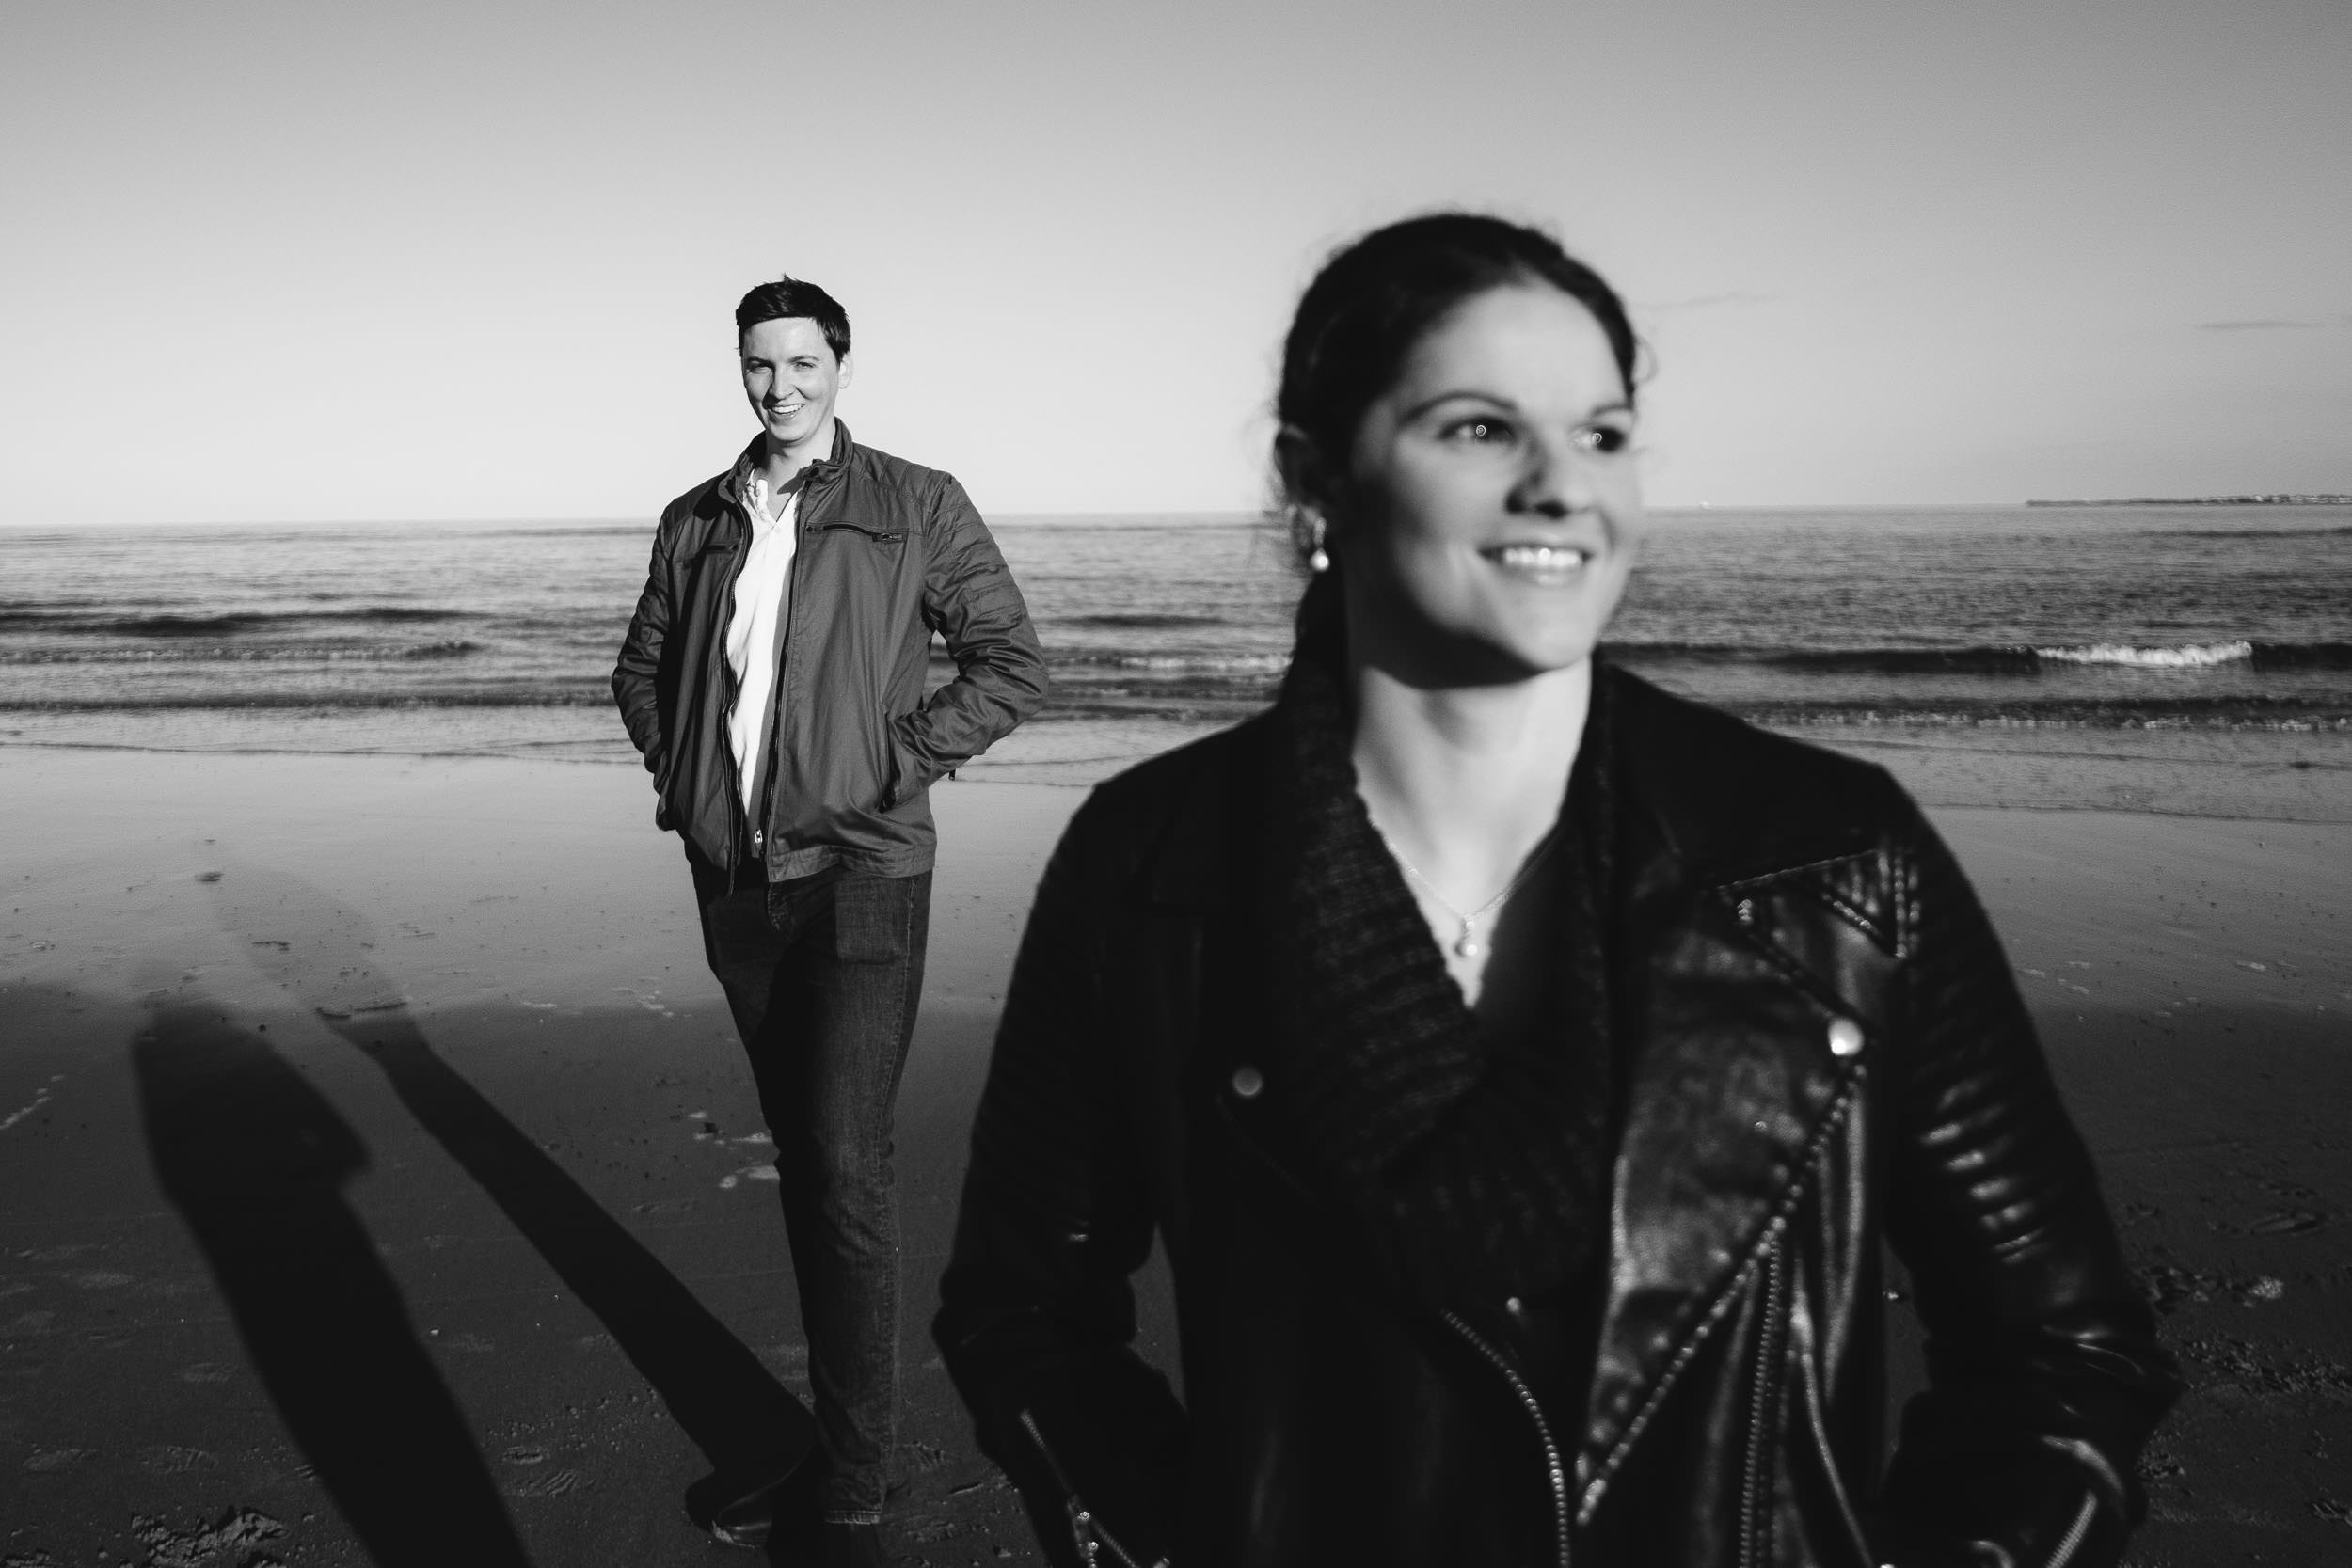 A black and white photo of a couple at the coast with the man in focus and the woman out of focus